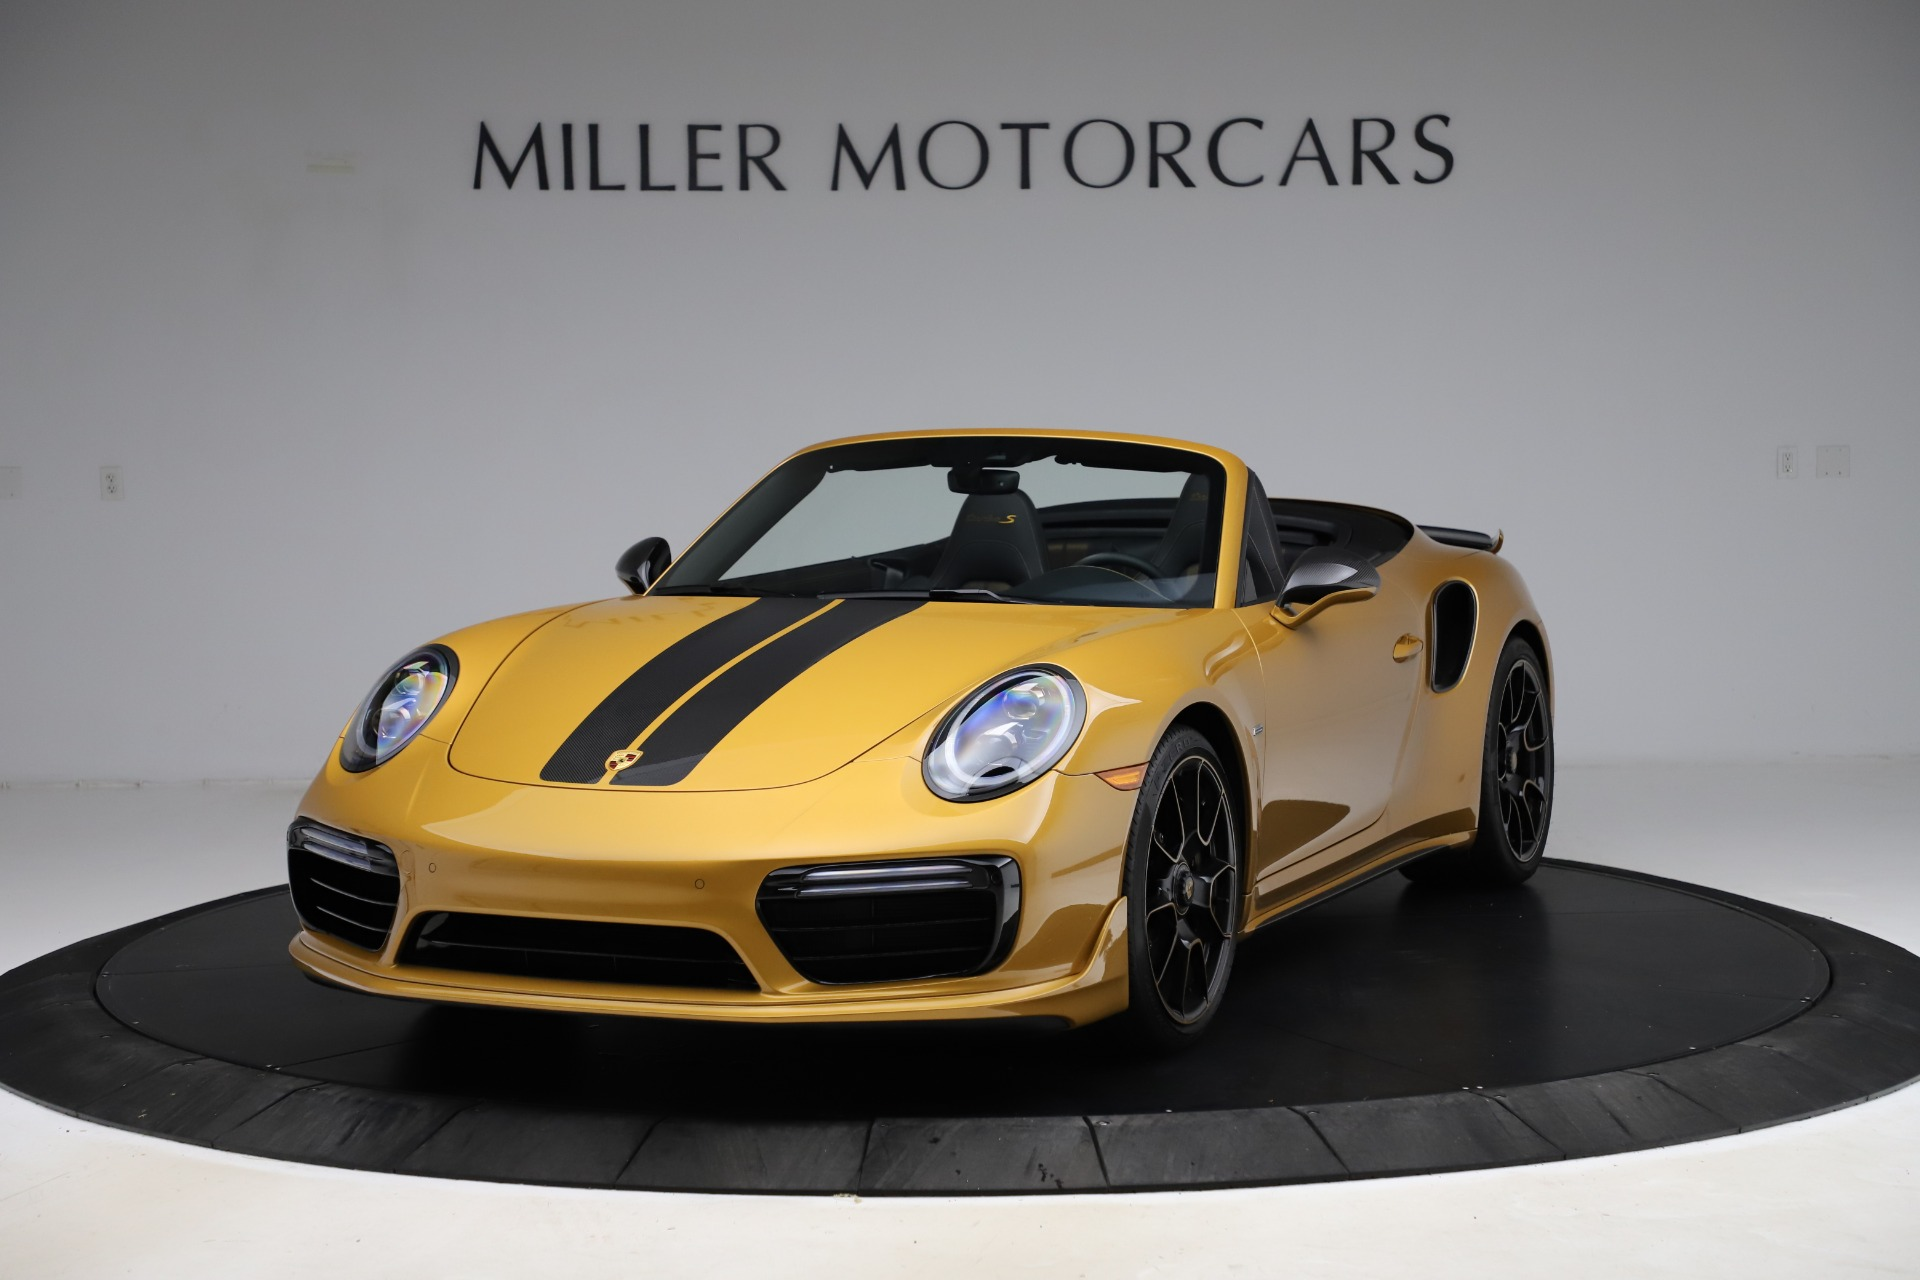 Used 2019 Porsche 911 Turbo S Exclusive for sale Sold at McLaren Greenwich in Greenwich CT 06830 1